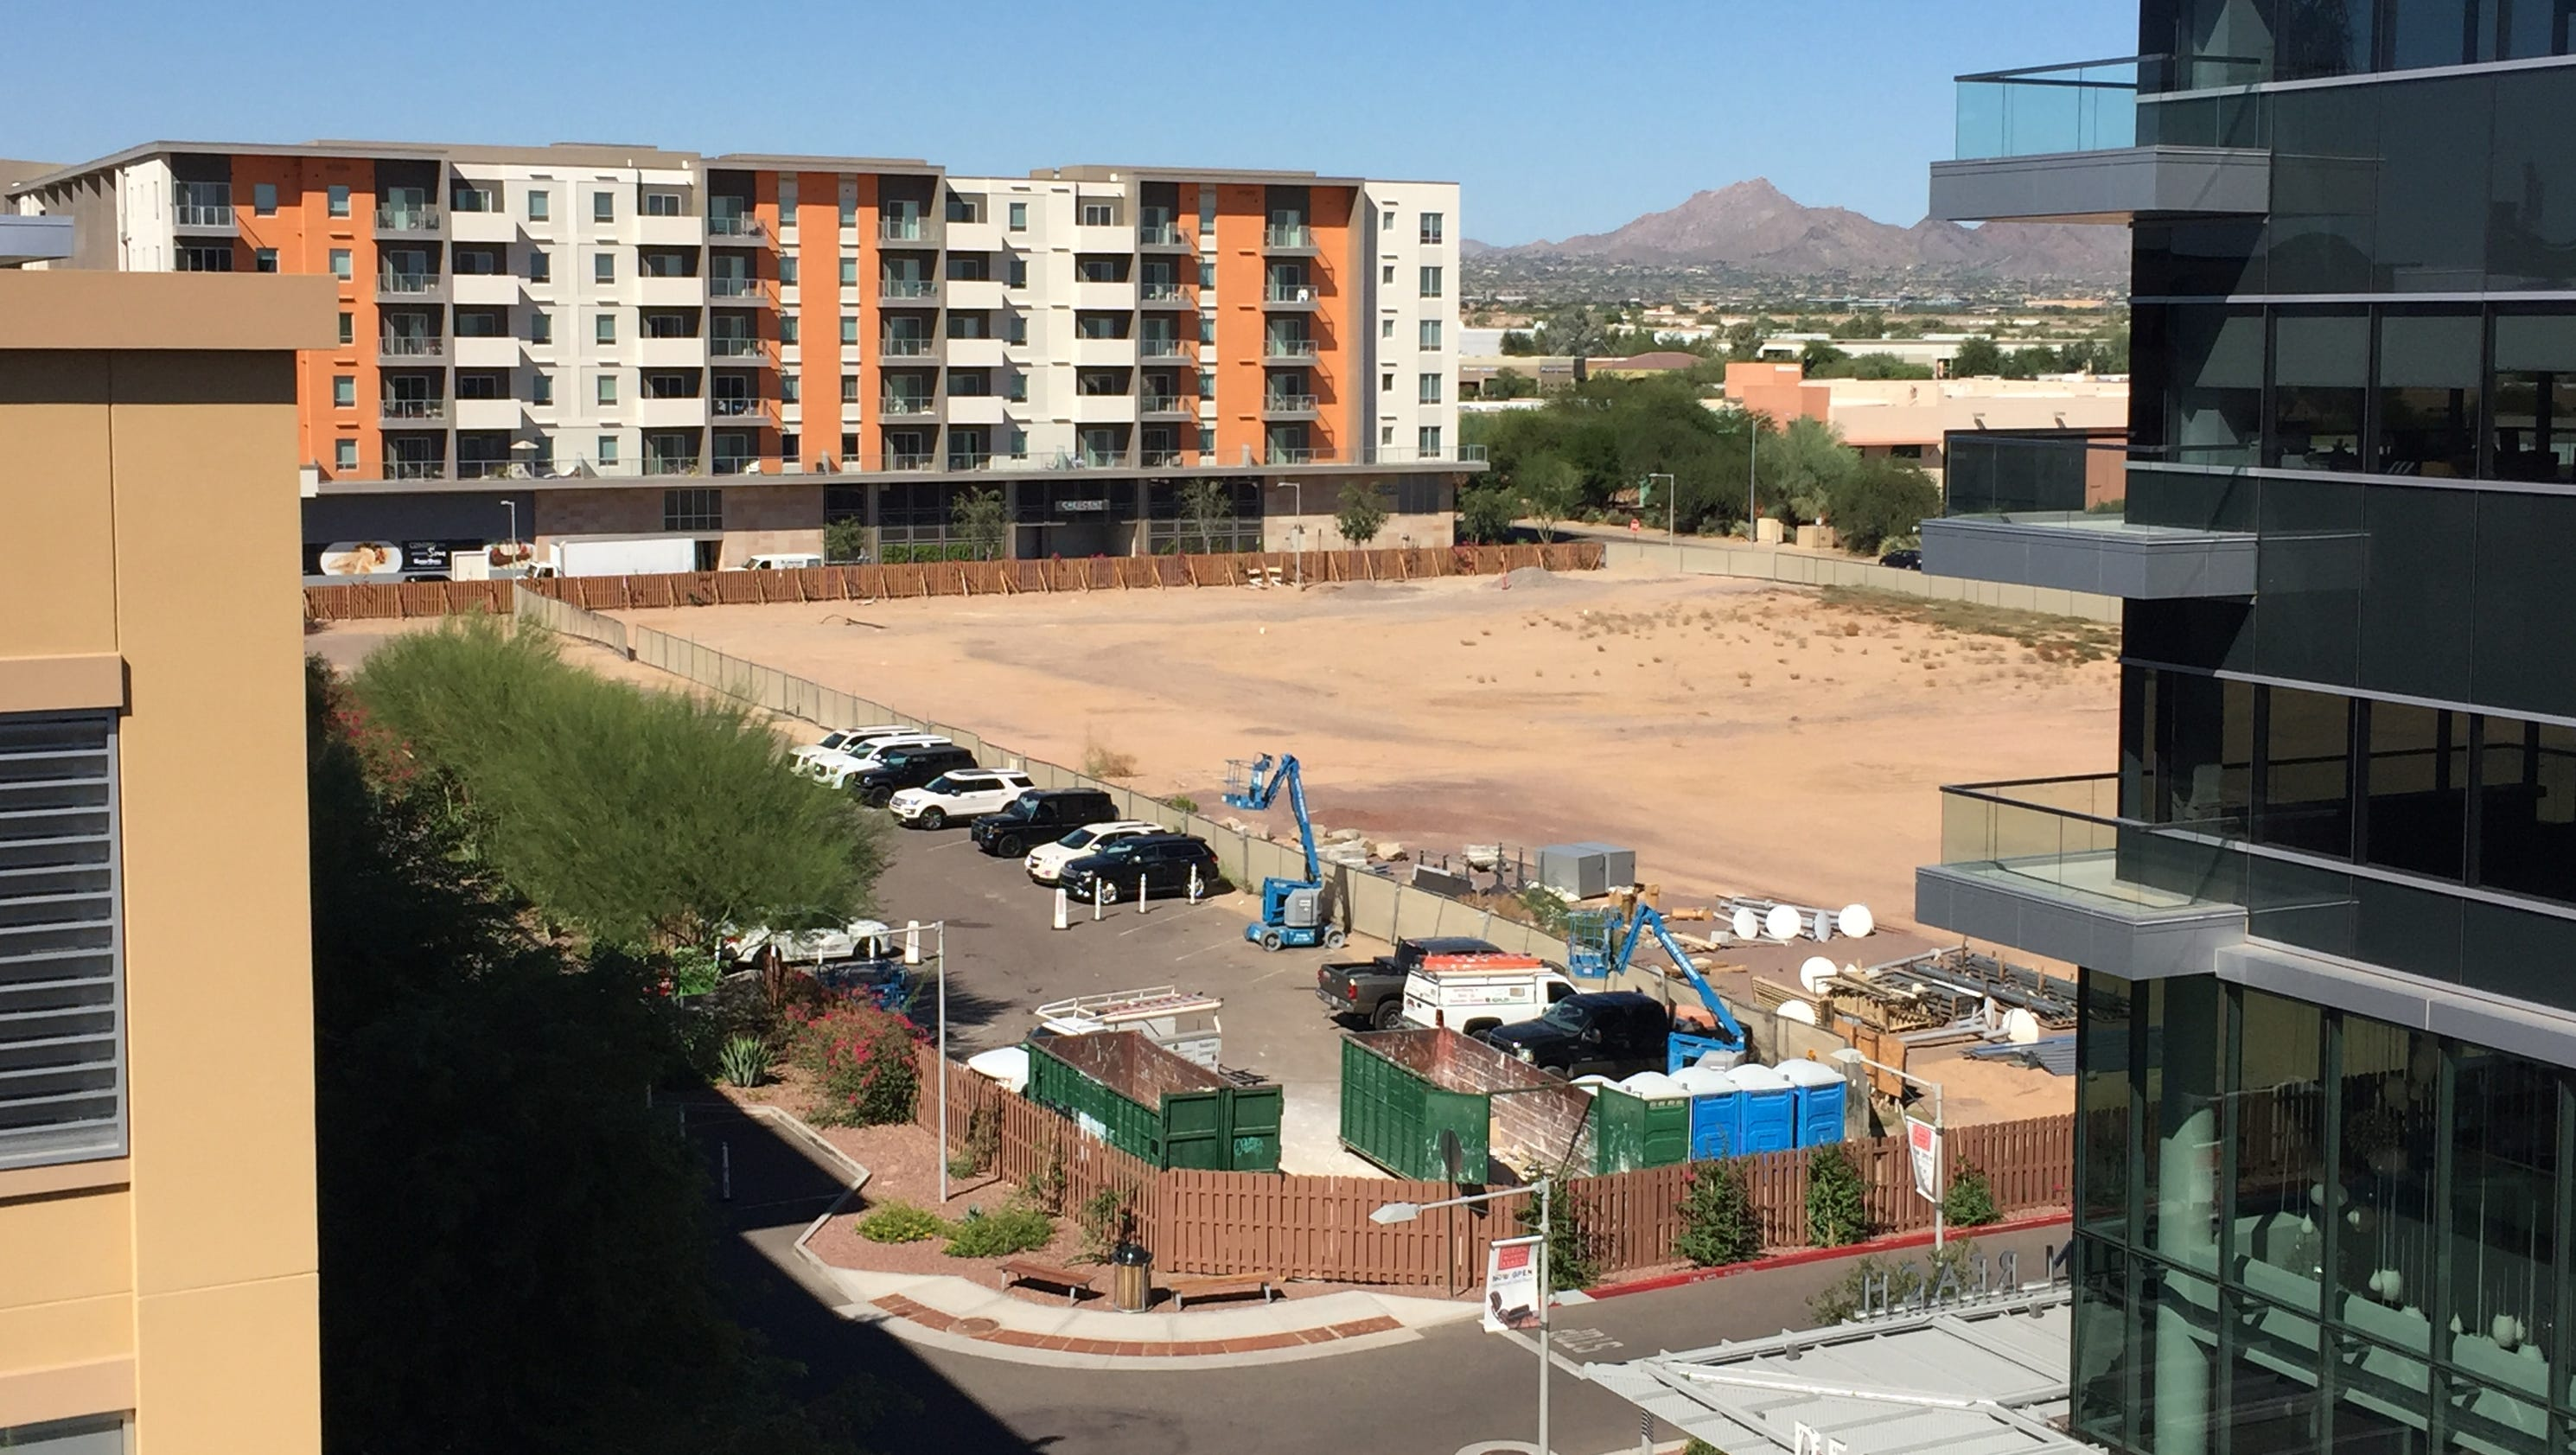 Scottsdale Quarter plans more shops apartments in 8 story tower